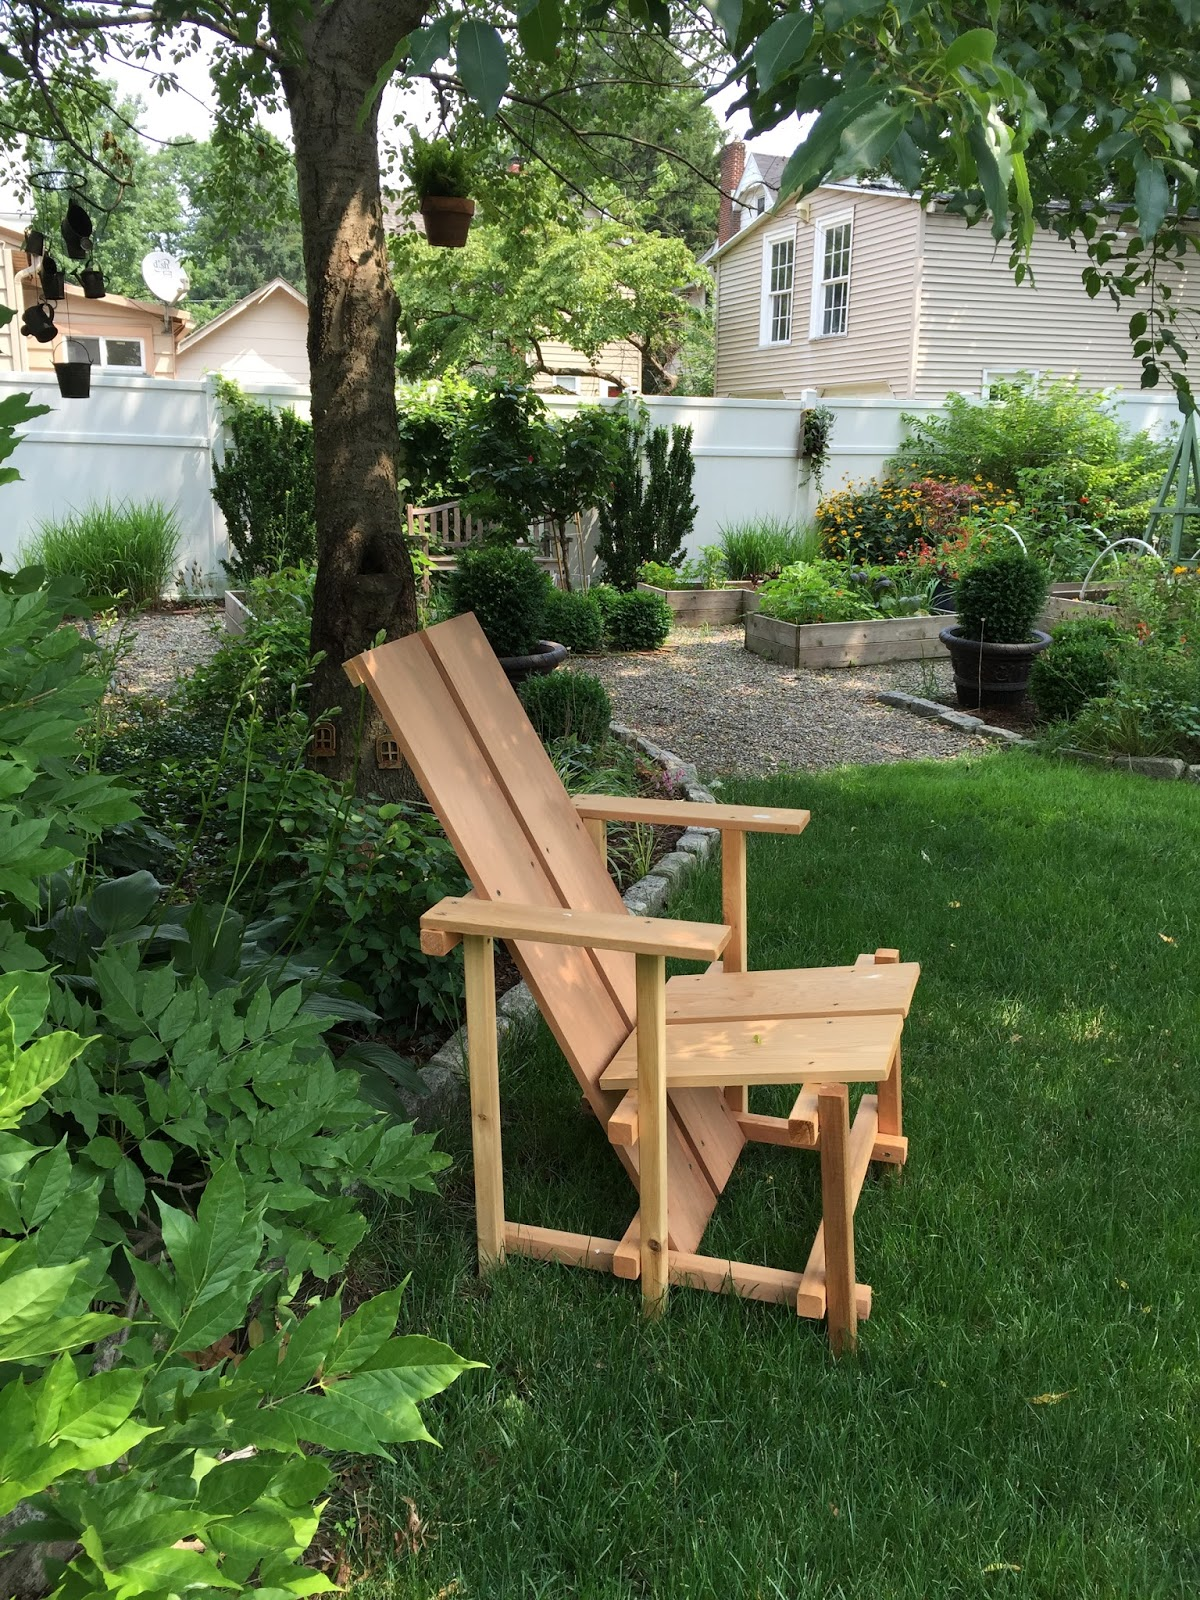 The Best Part Of Building Your Own Garden Chair Is Getting To Relax And  Enjoy Sitting In It With A Refreshing Beverage After A Hard Day Of Weeding.